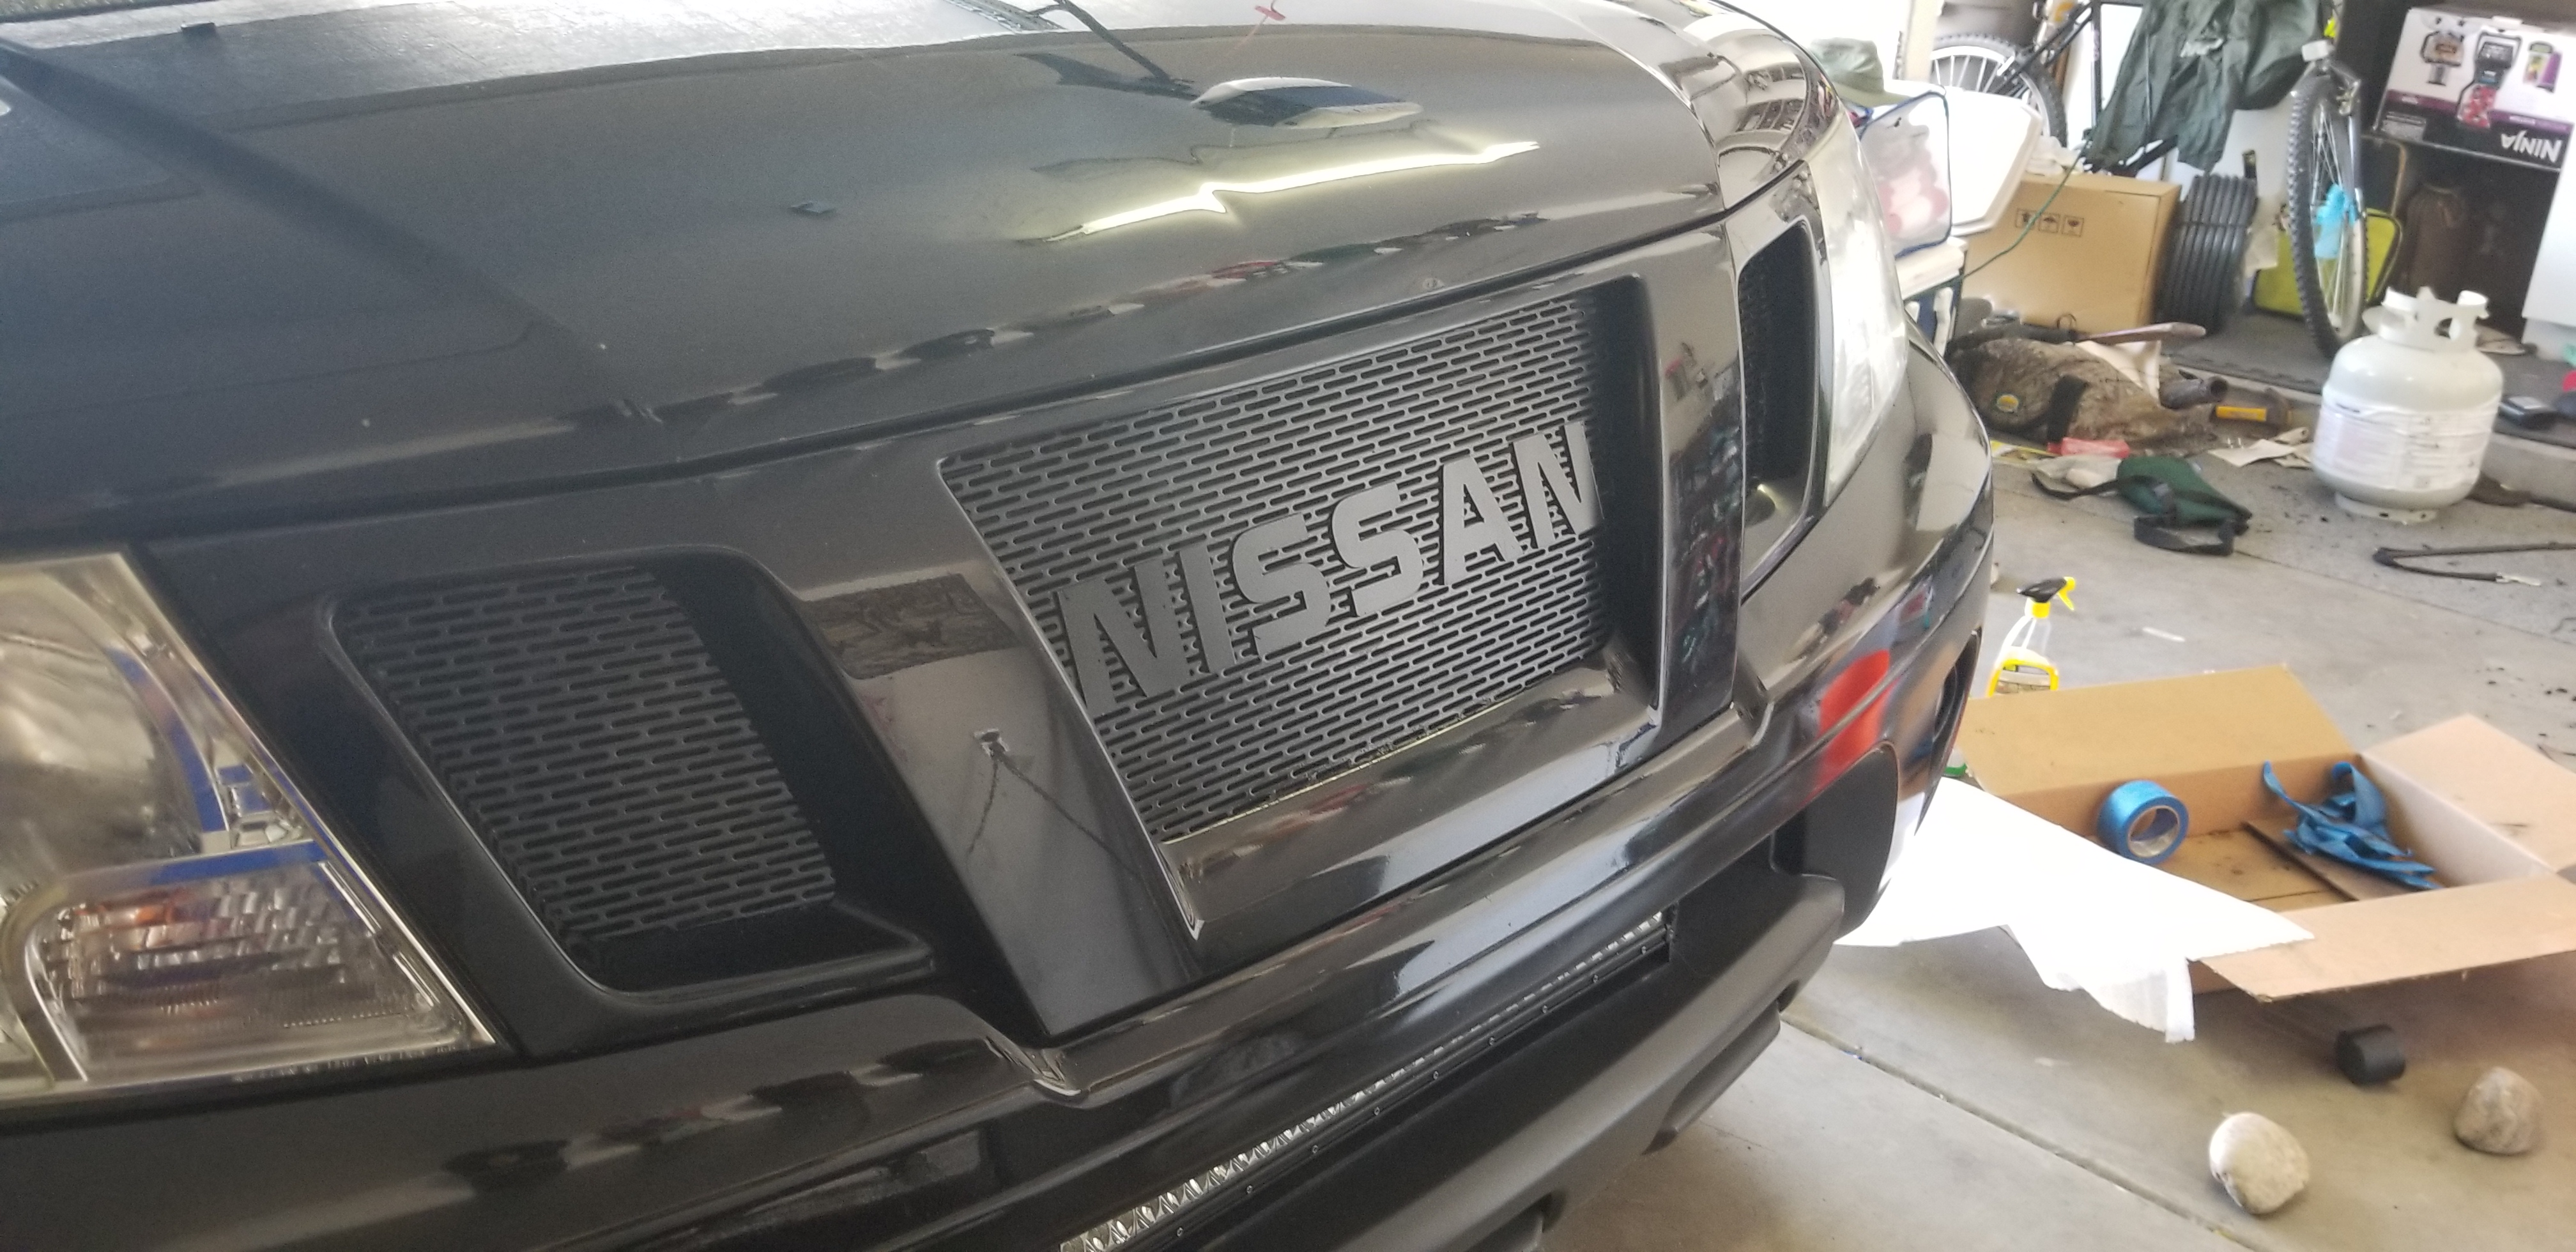 tacoma raptor style grill for frontier nissan frontier forum tacoma raptor style grill for